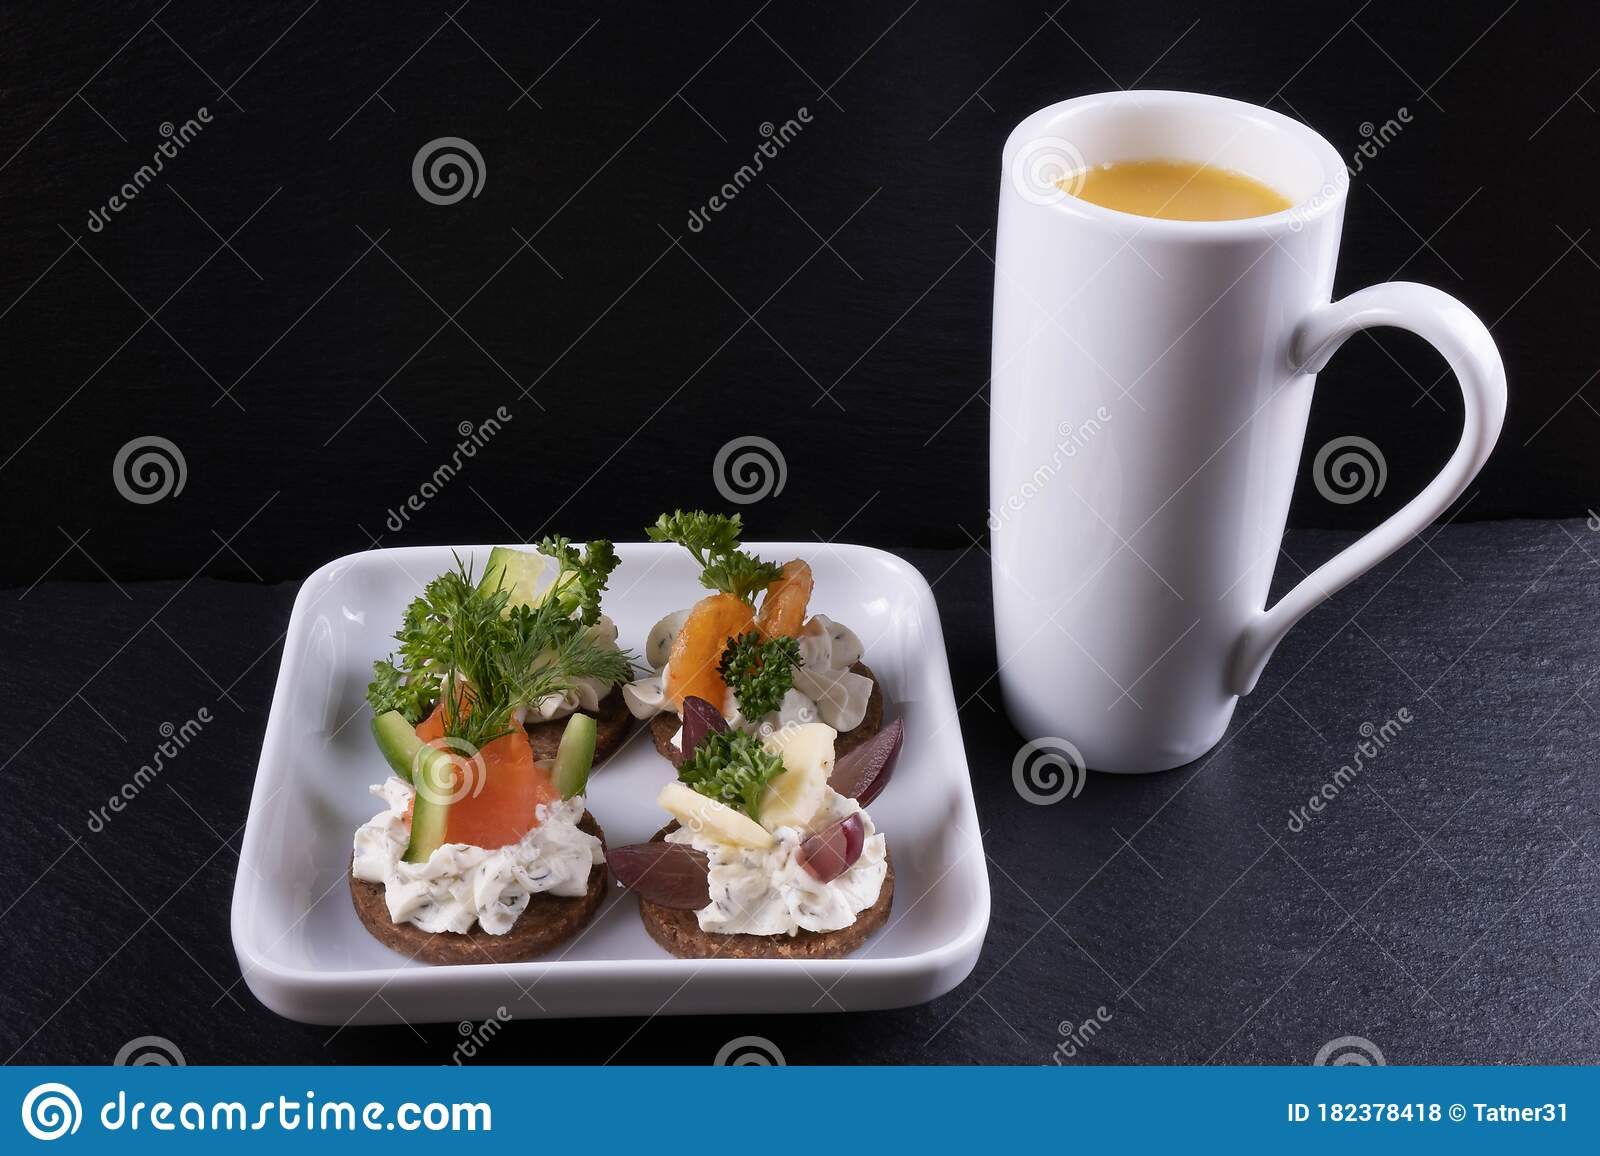 Sandwiches Of Smoked Salmon Shrimp Dill And Sauce On A Plate Next To Orange Juice Stock Photo Image Of Date Healthy 182378418